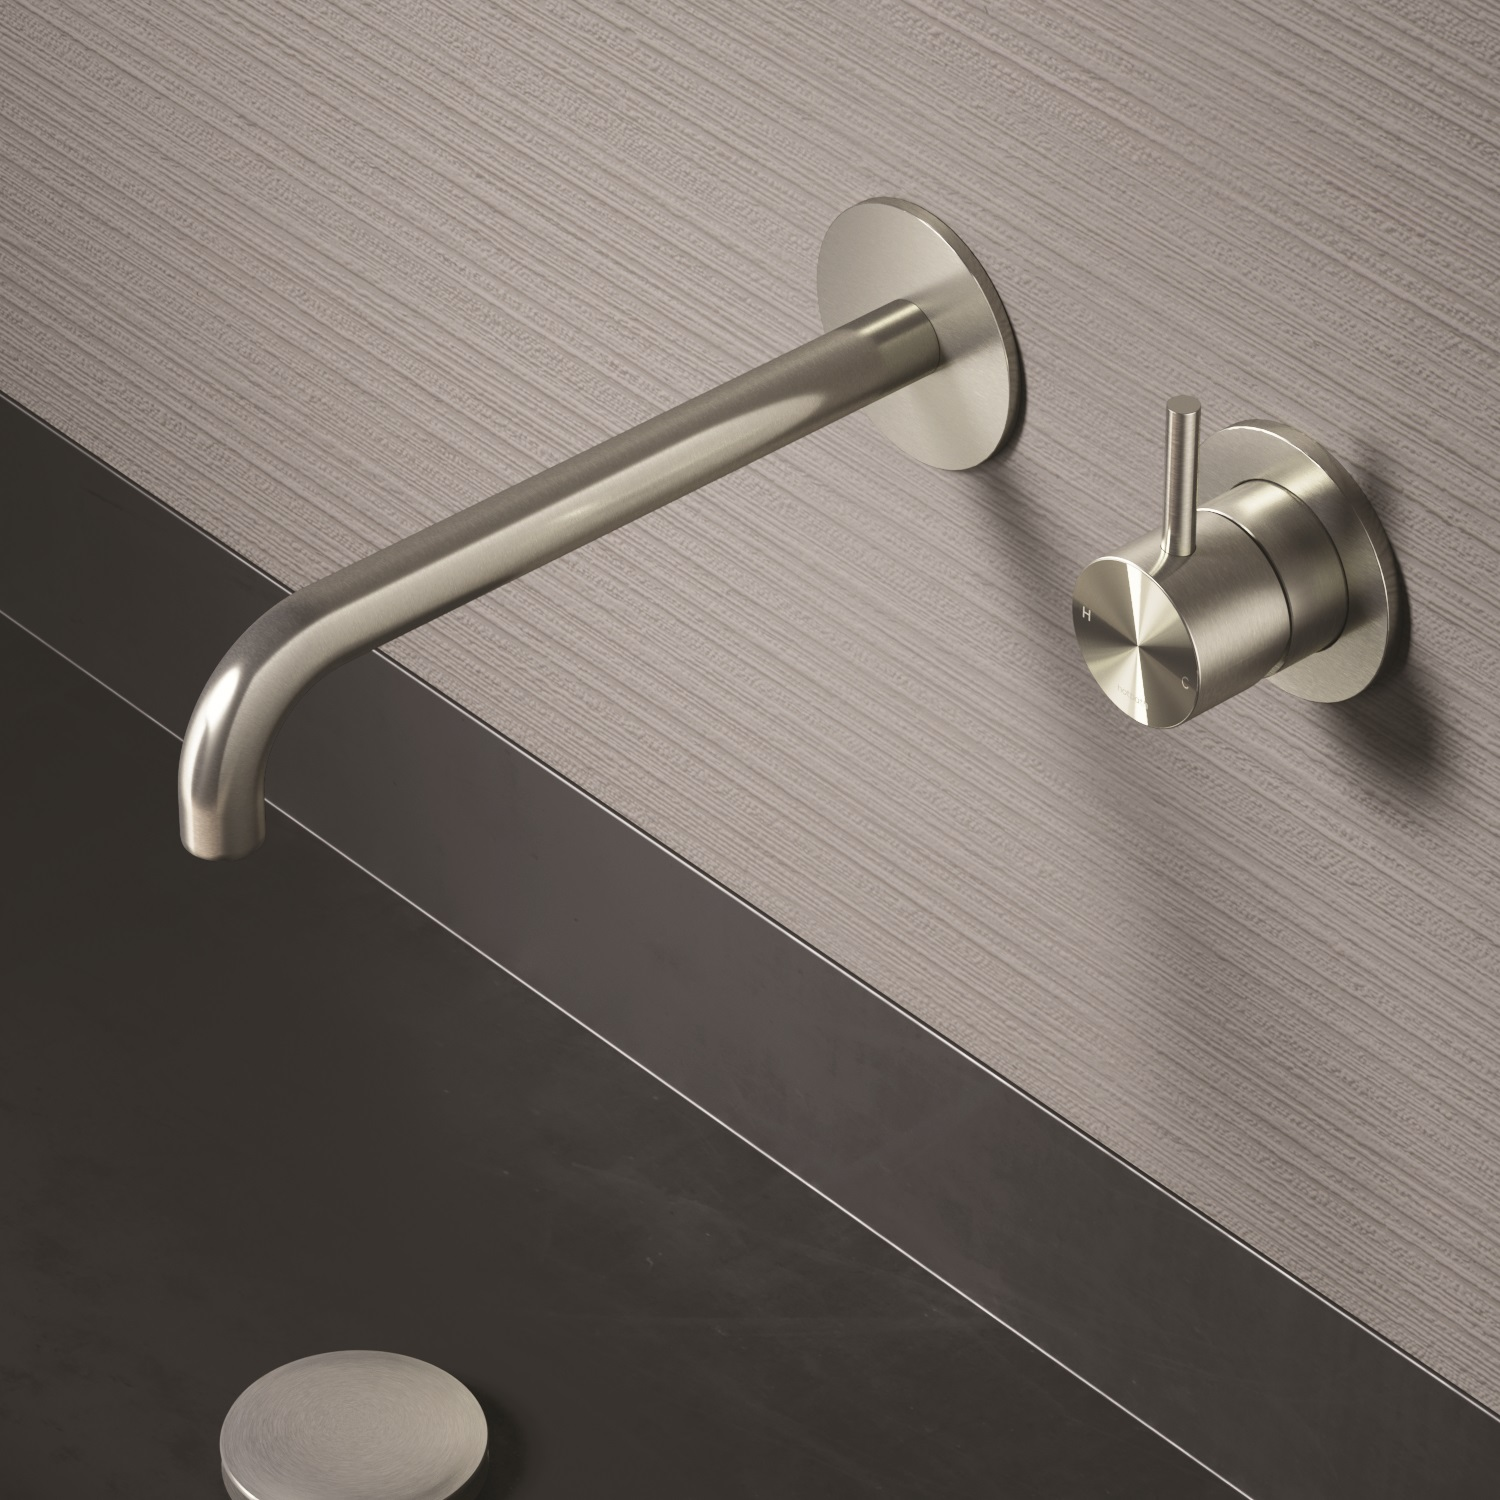 Archie AR005 316 Stainless Steel Wall Mount Faucet - Trim Only